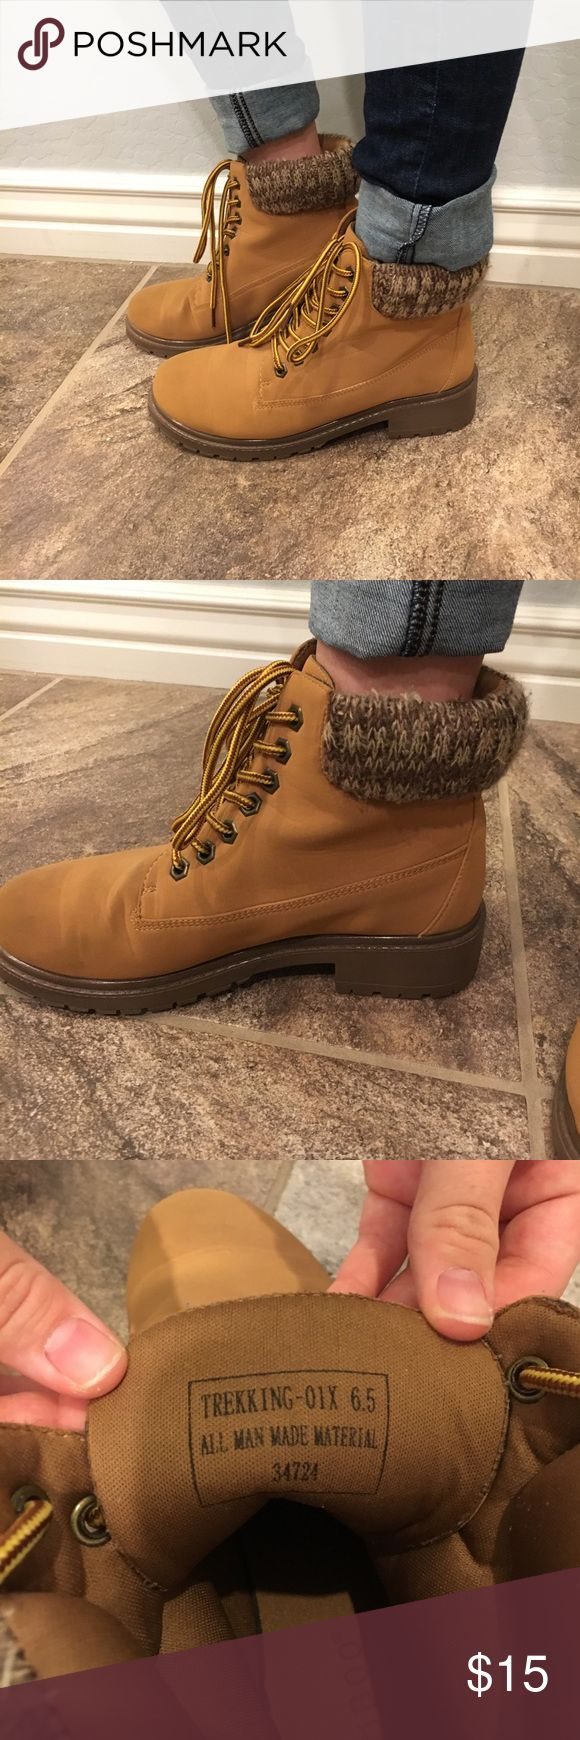 Construction Boots Light brown boots. Worn twice, great condition. Very cute with a pair of jeans. Very comfortable. I love the laces Tilly's Shoes Ankle Boots & Booties